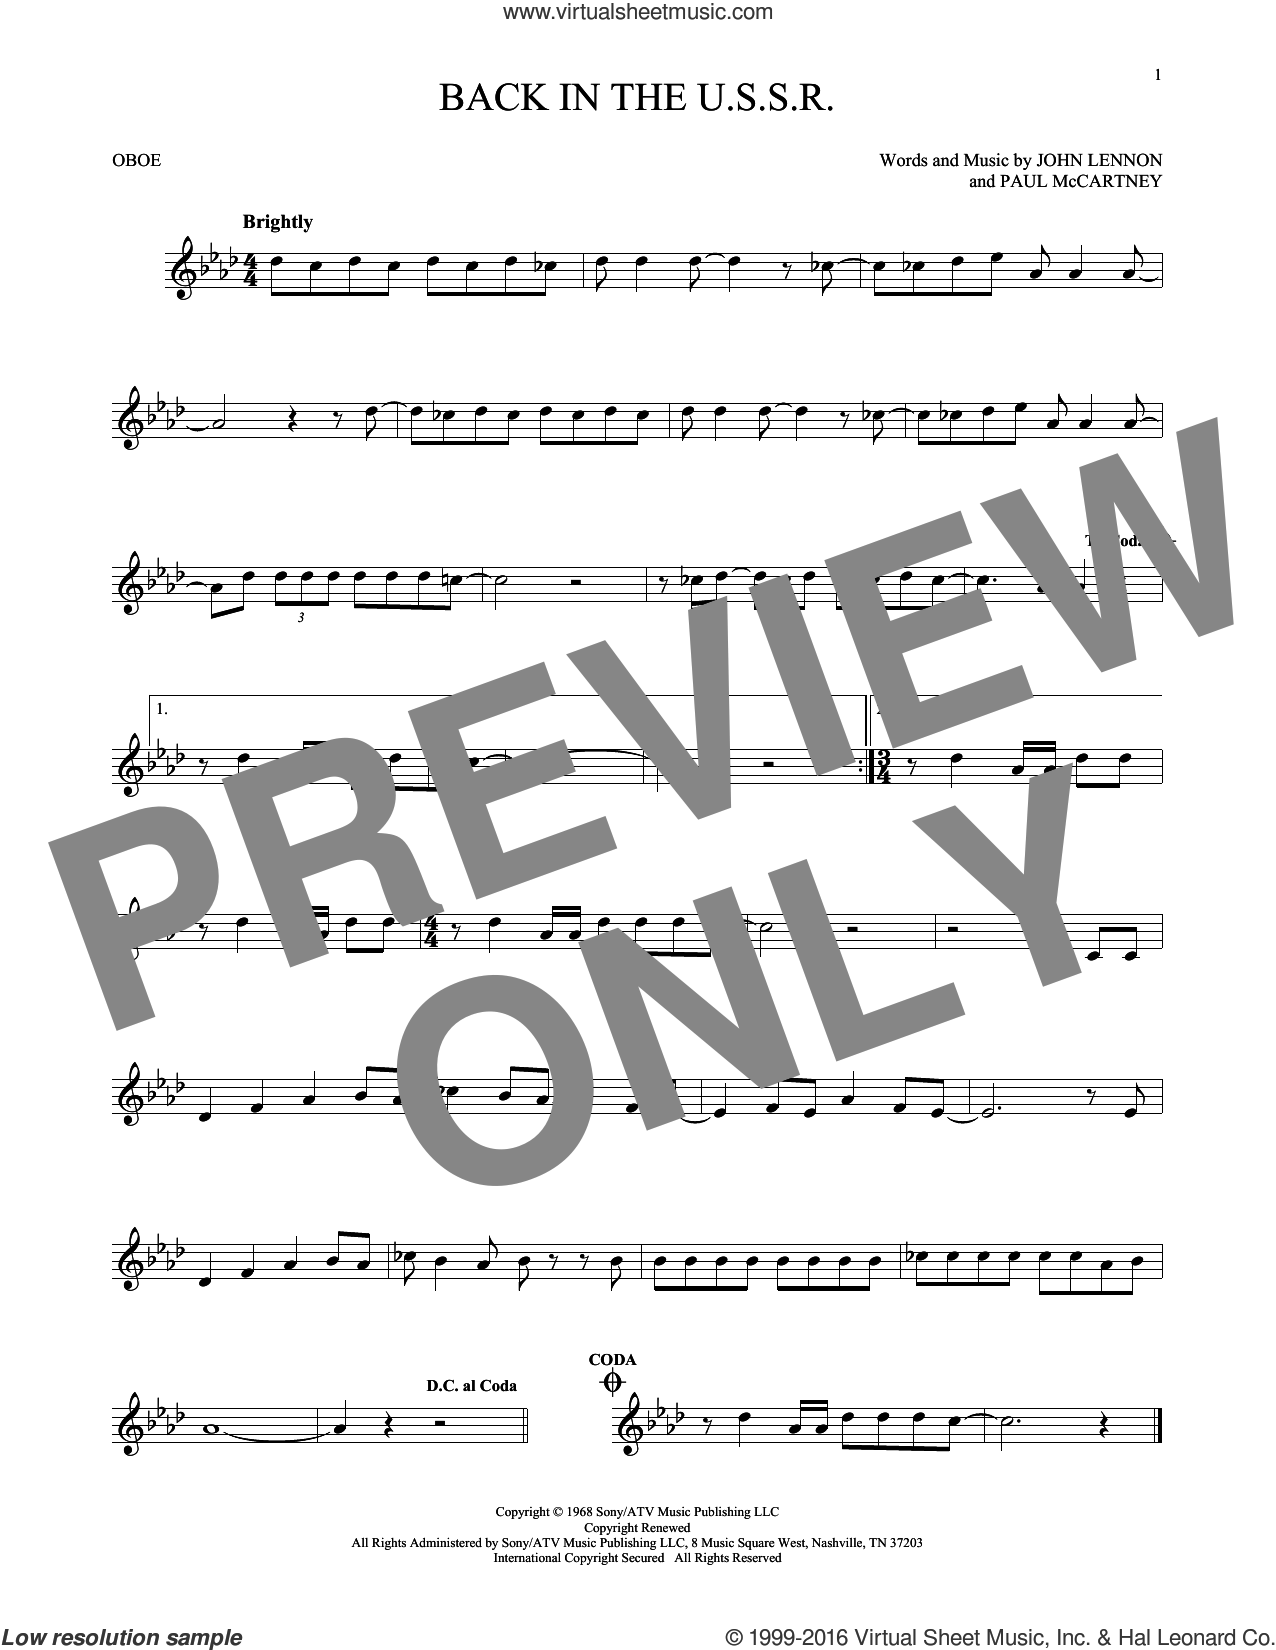 Back In The U.S.S.R. sheet music for oboe solo by Paul McCartney, The Beatles and John Lennon. Score Image Preview.